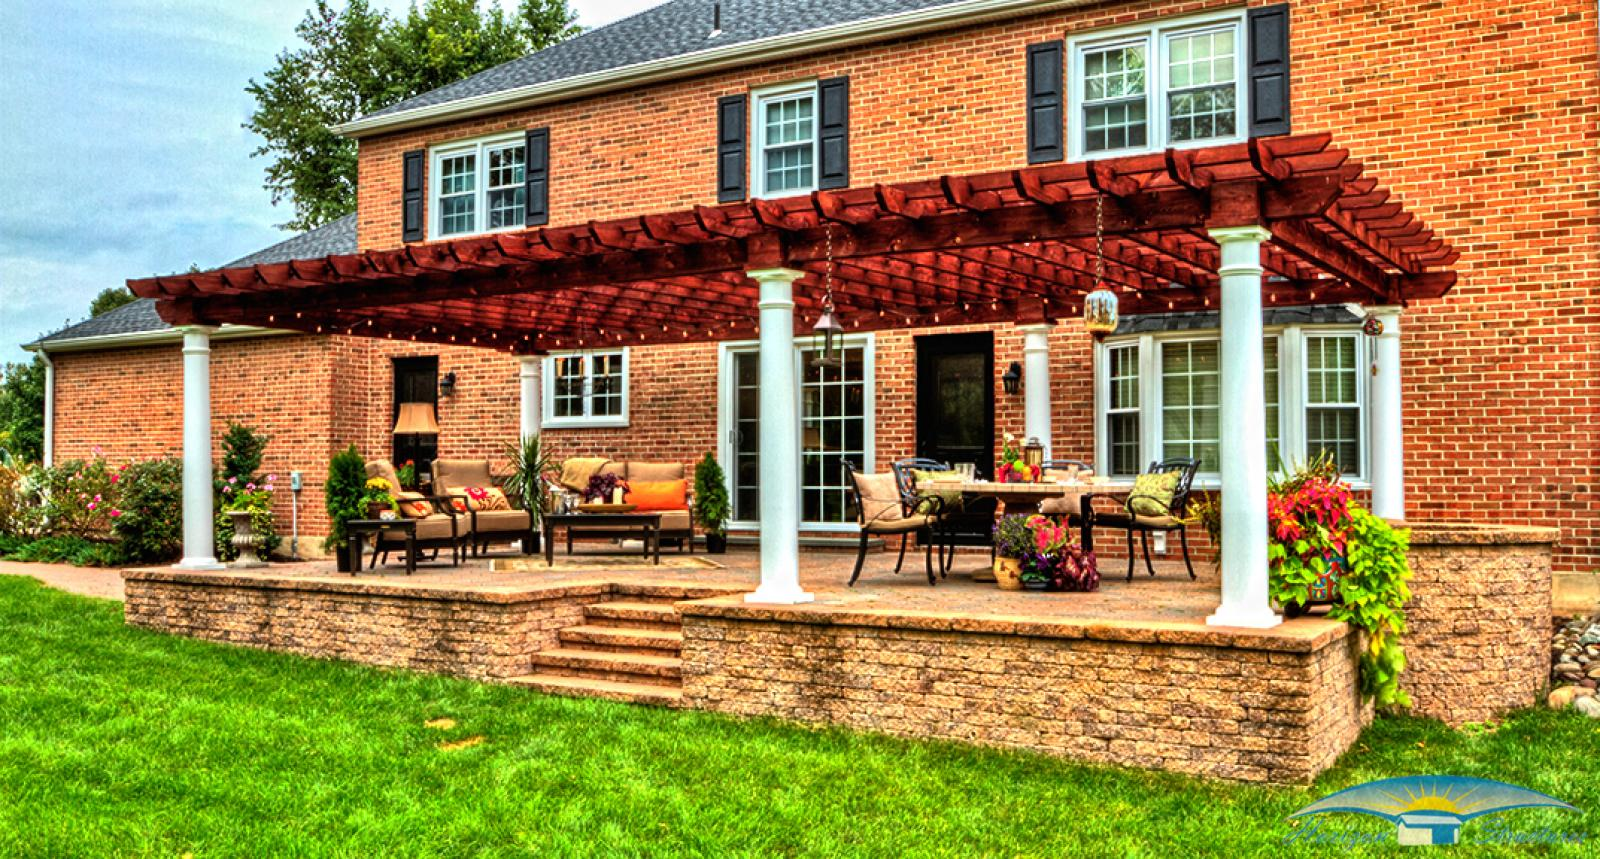 outdoor-living-pergola-artisan-wood-16x32-with-10-inch-round-columns-and-canyon-brown-stain_0